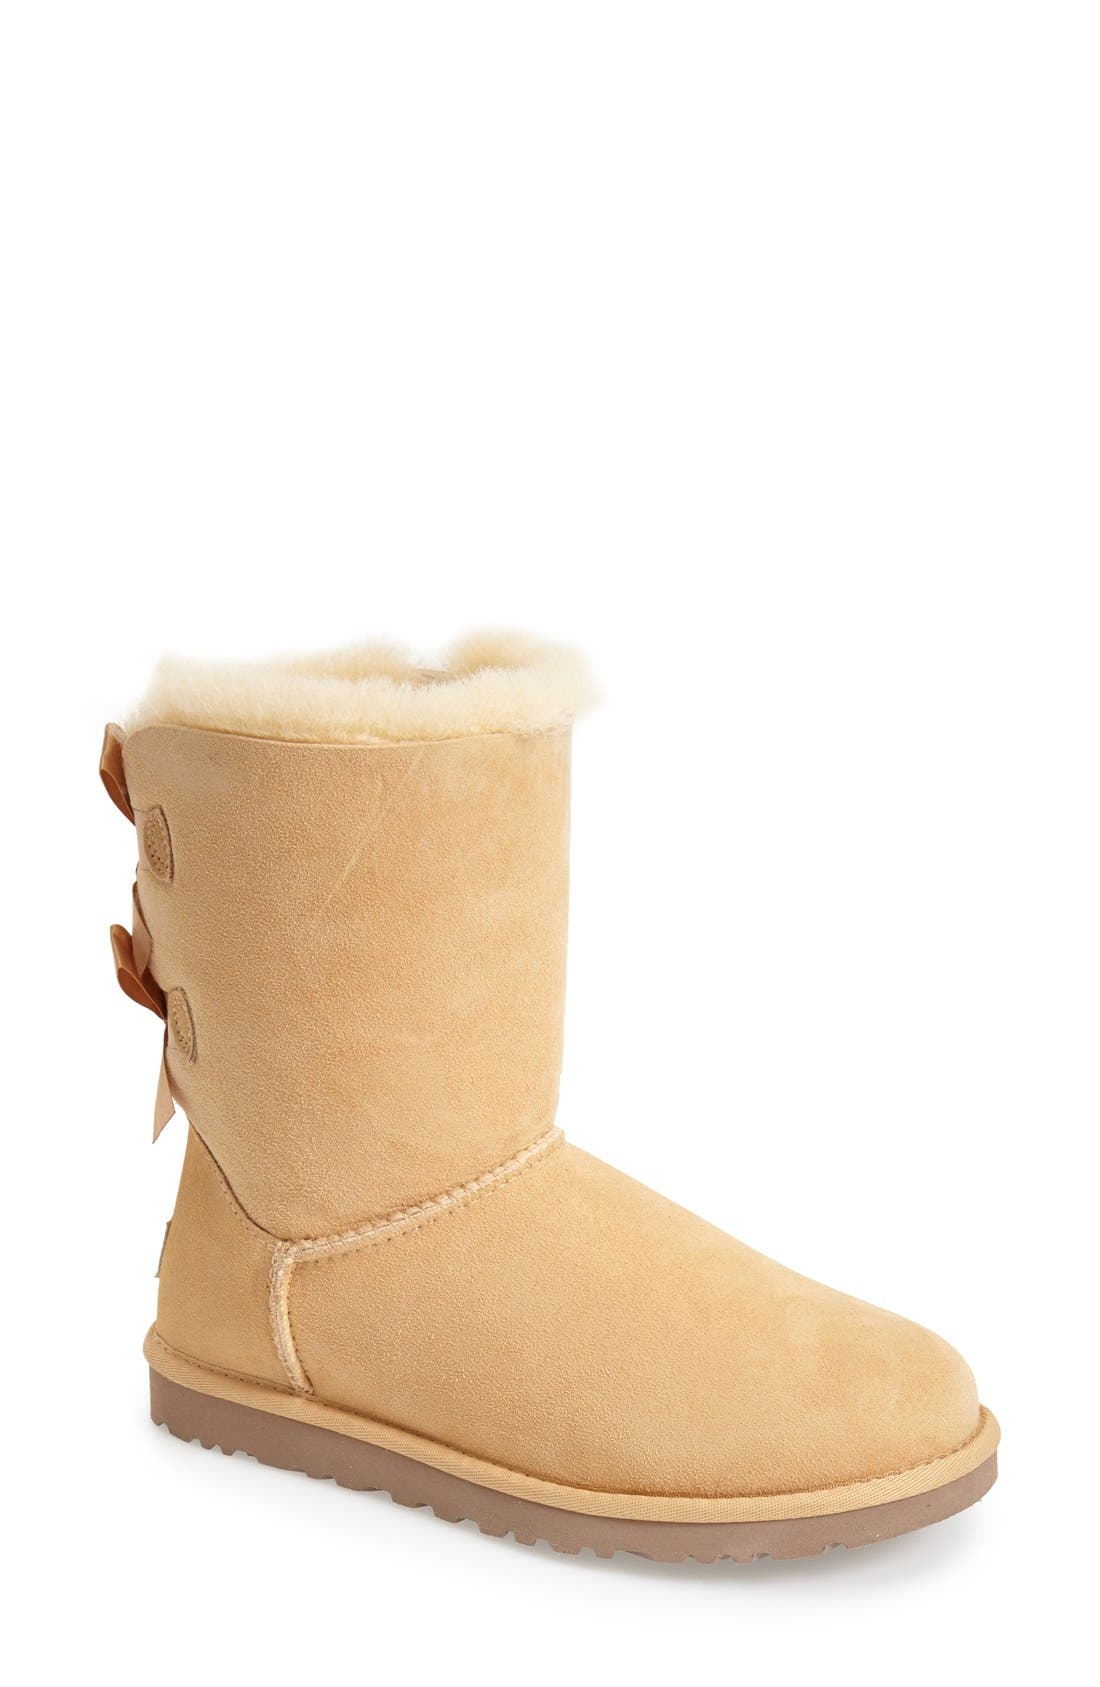 Alternate Image 1 Selected - UGG® 'Bailey Bow' Boot (Women)